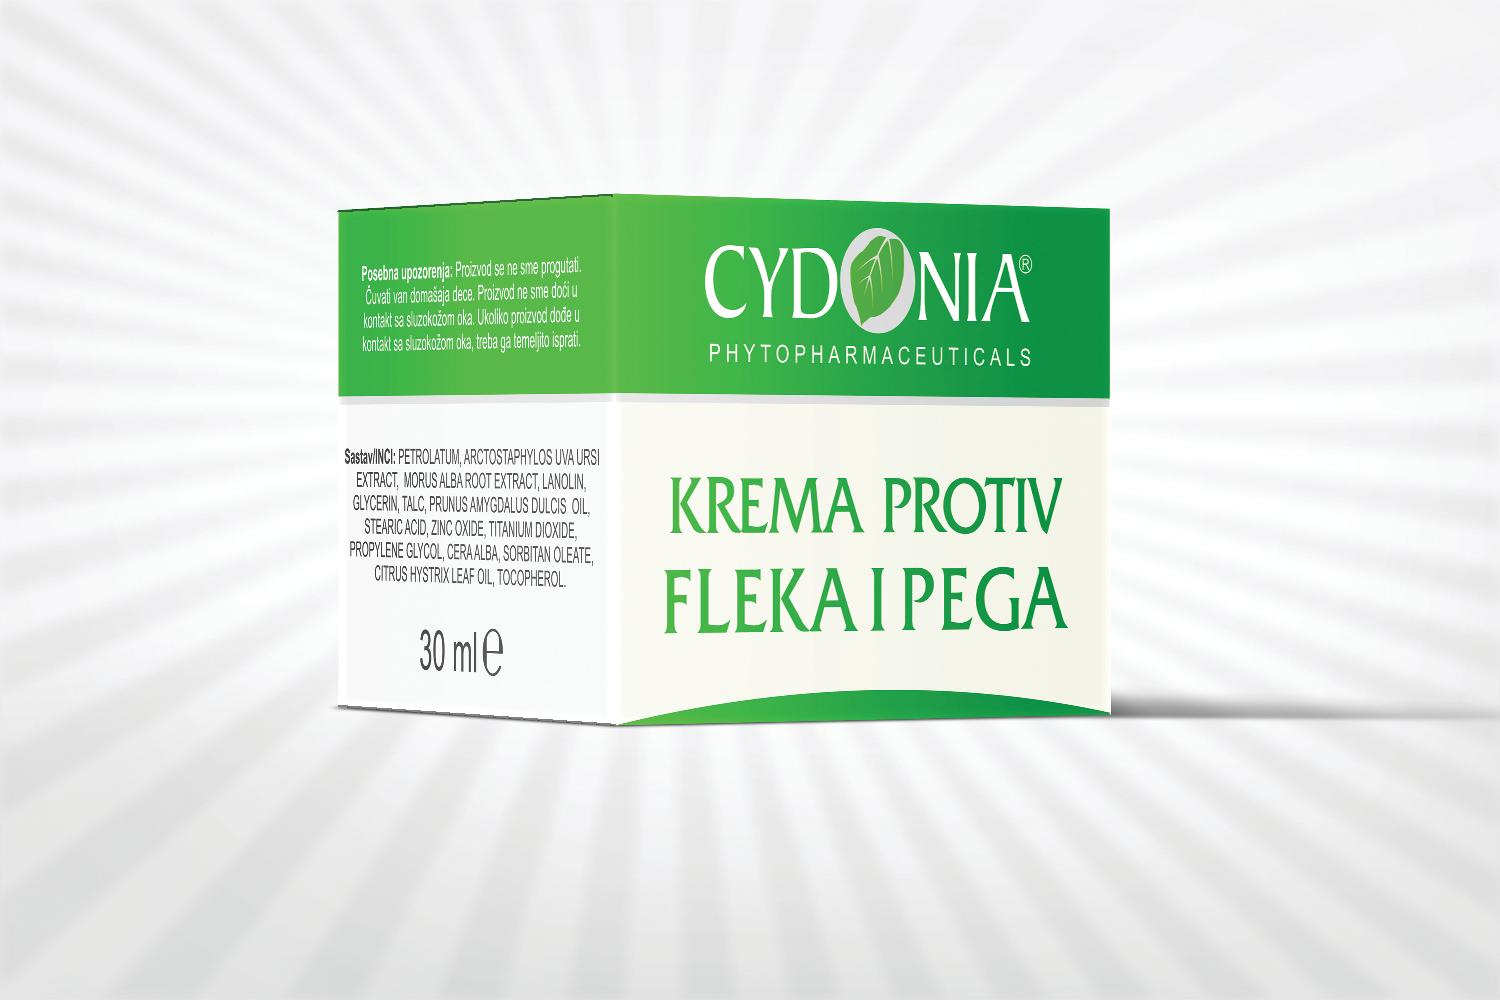 Cydonia krema